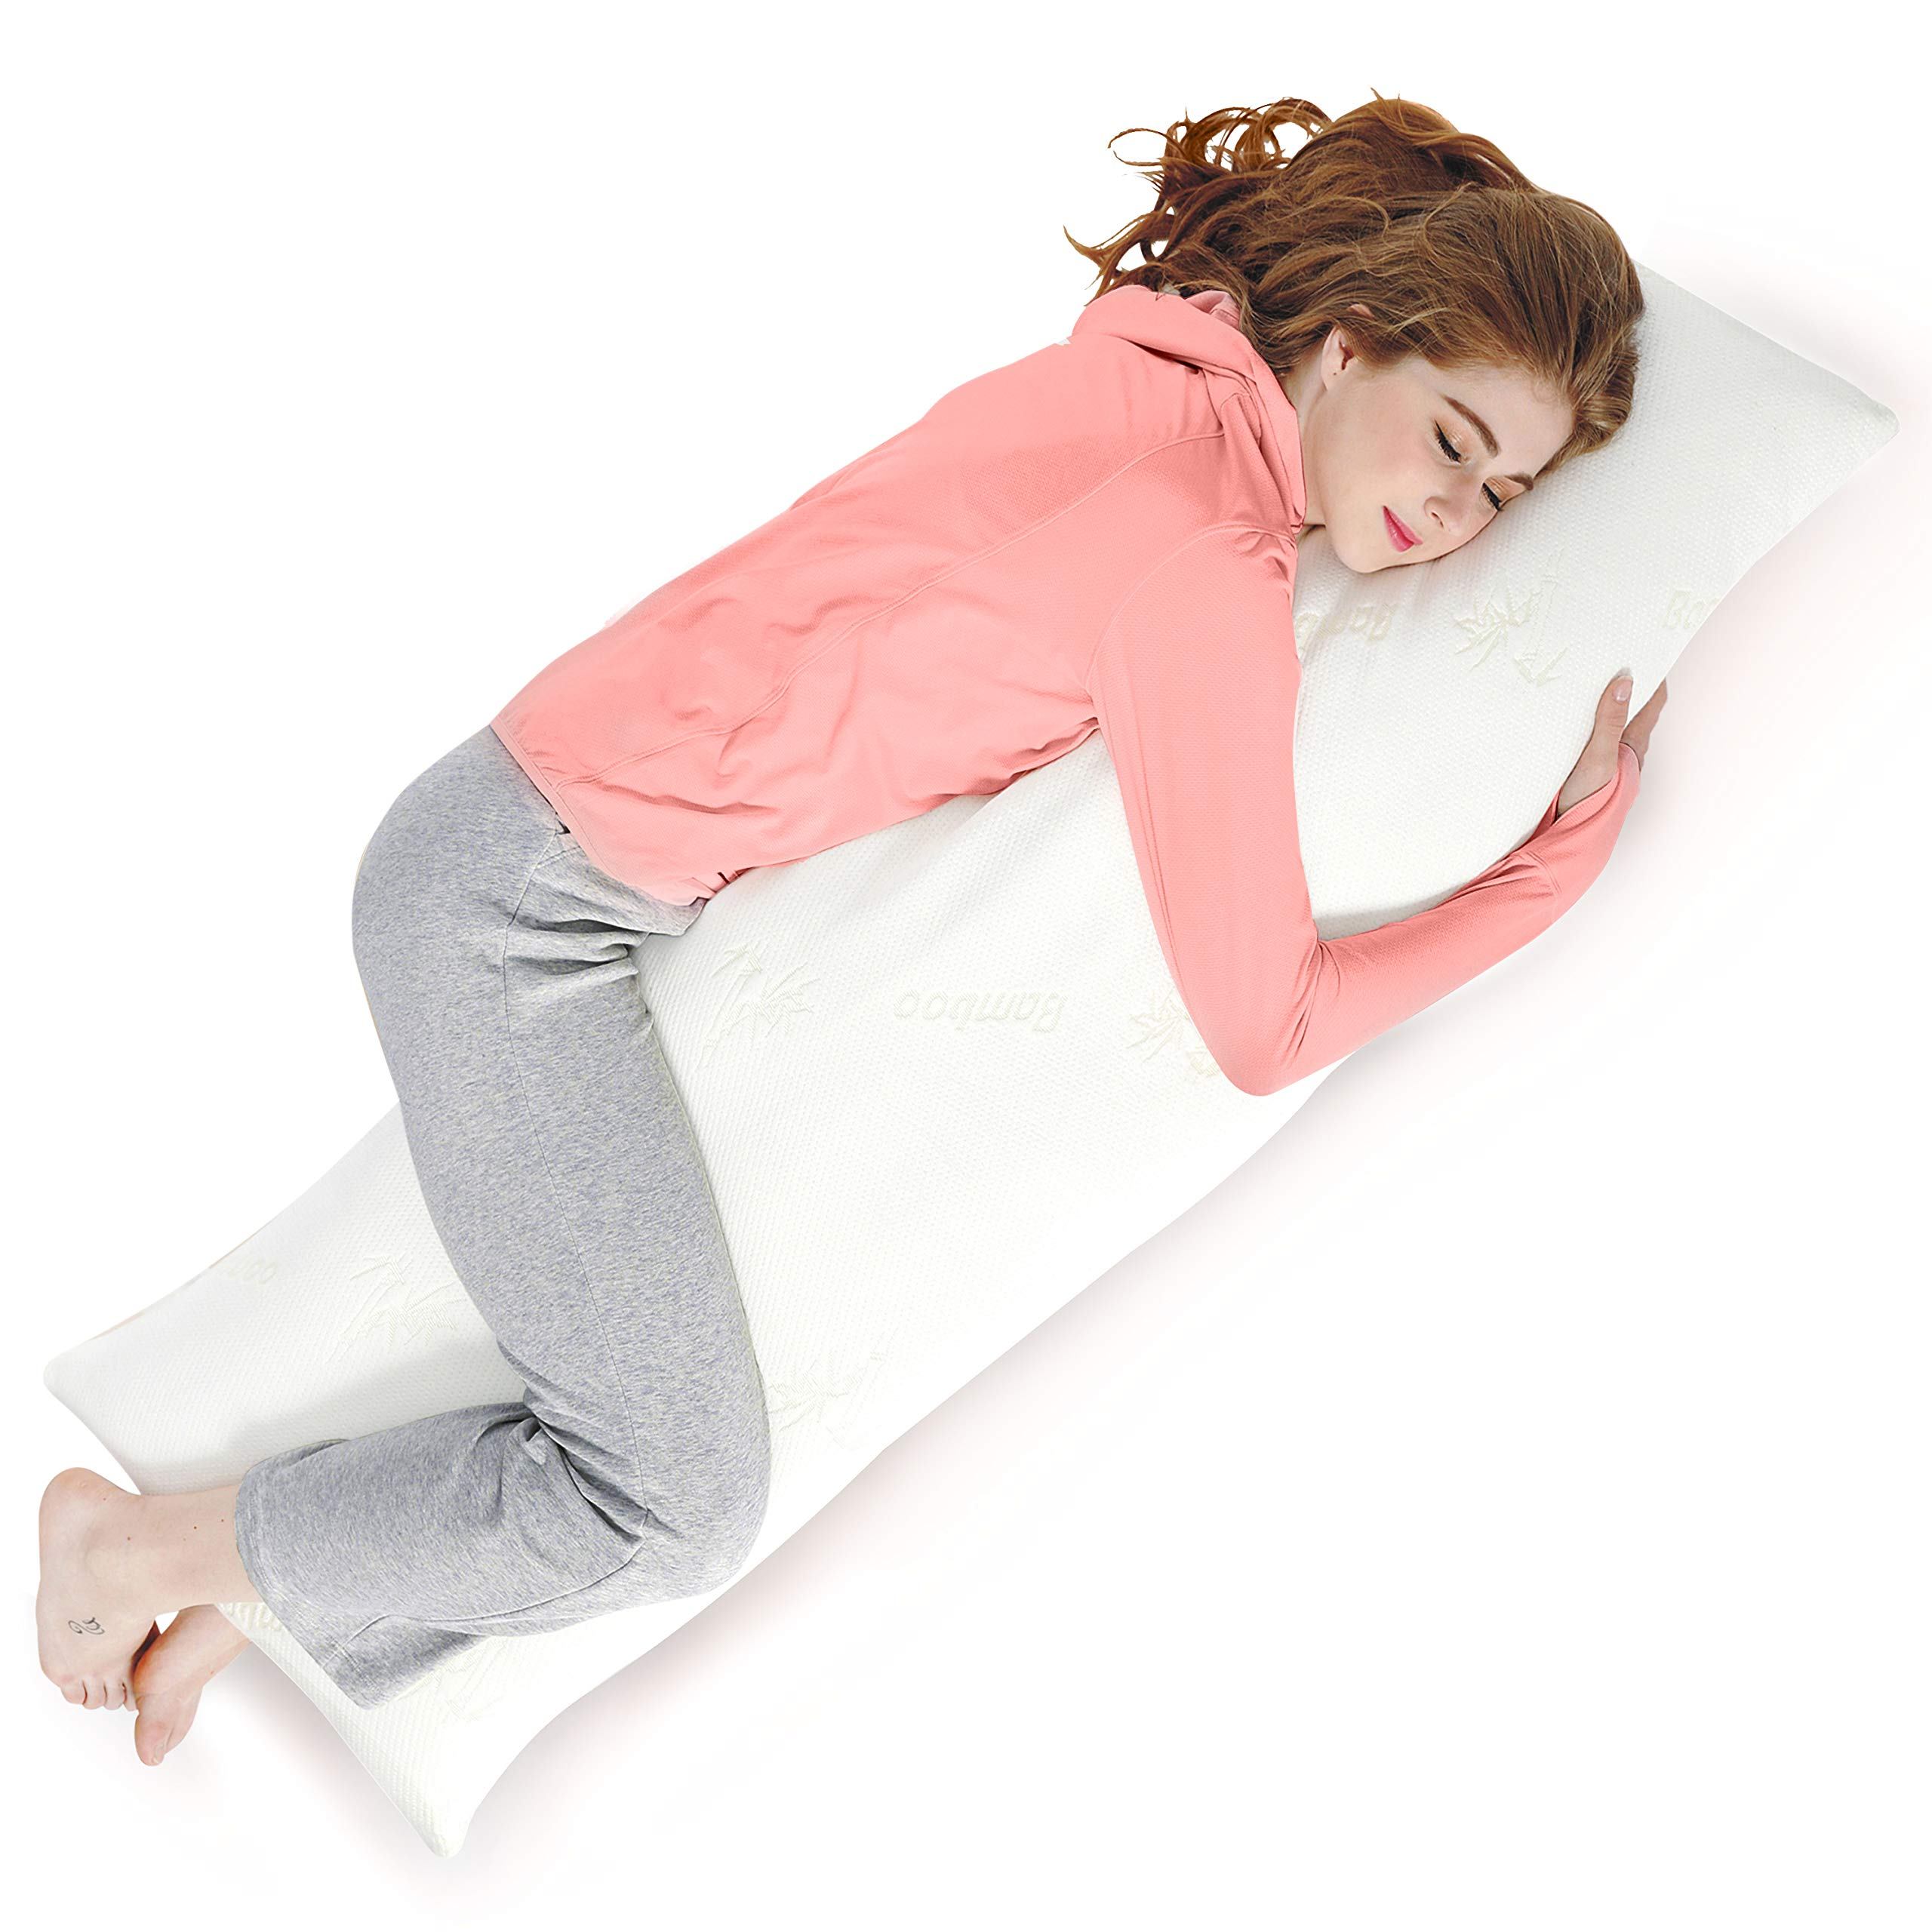 AmazingDreams Full Body Pillow - Side Sleeper Pillow and Pregnancy Pillow with Washable Bamboo Cover